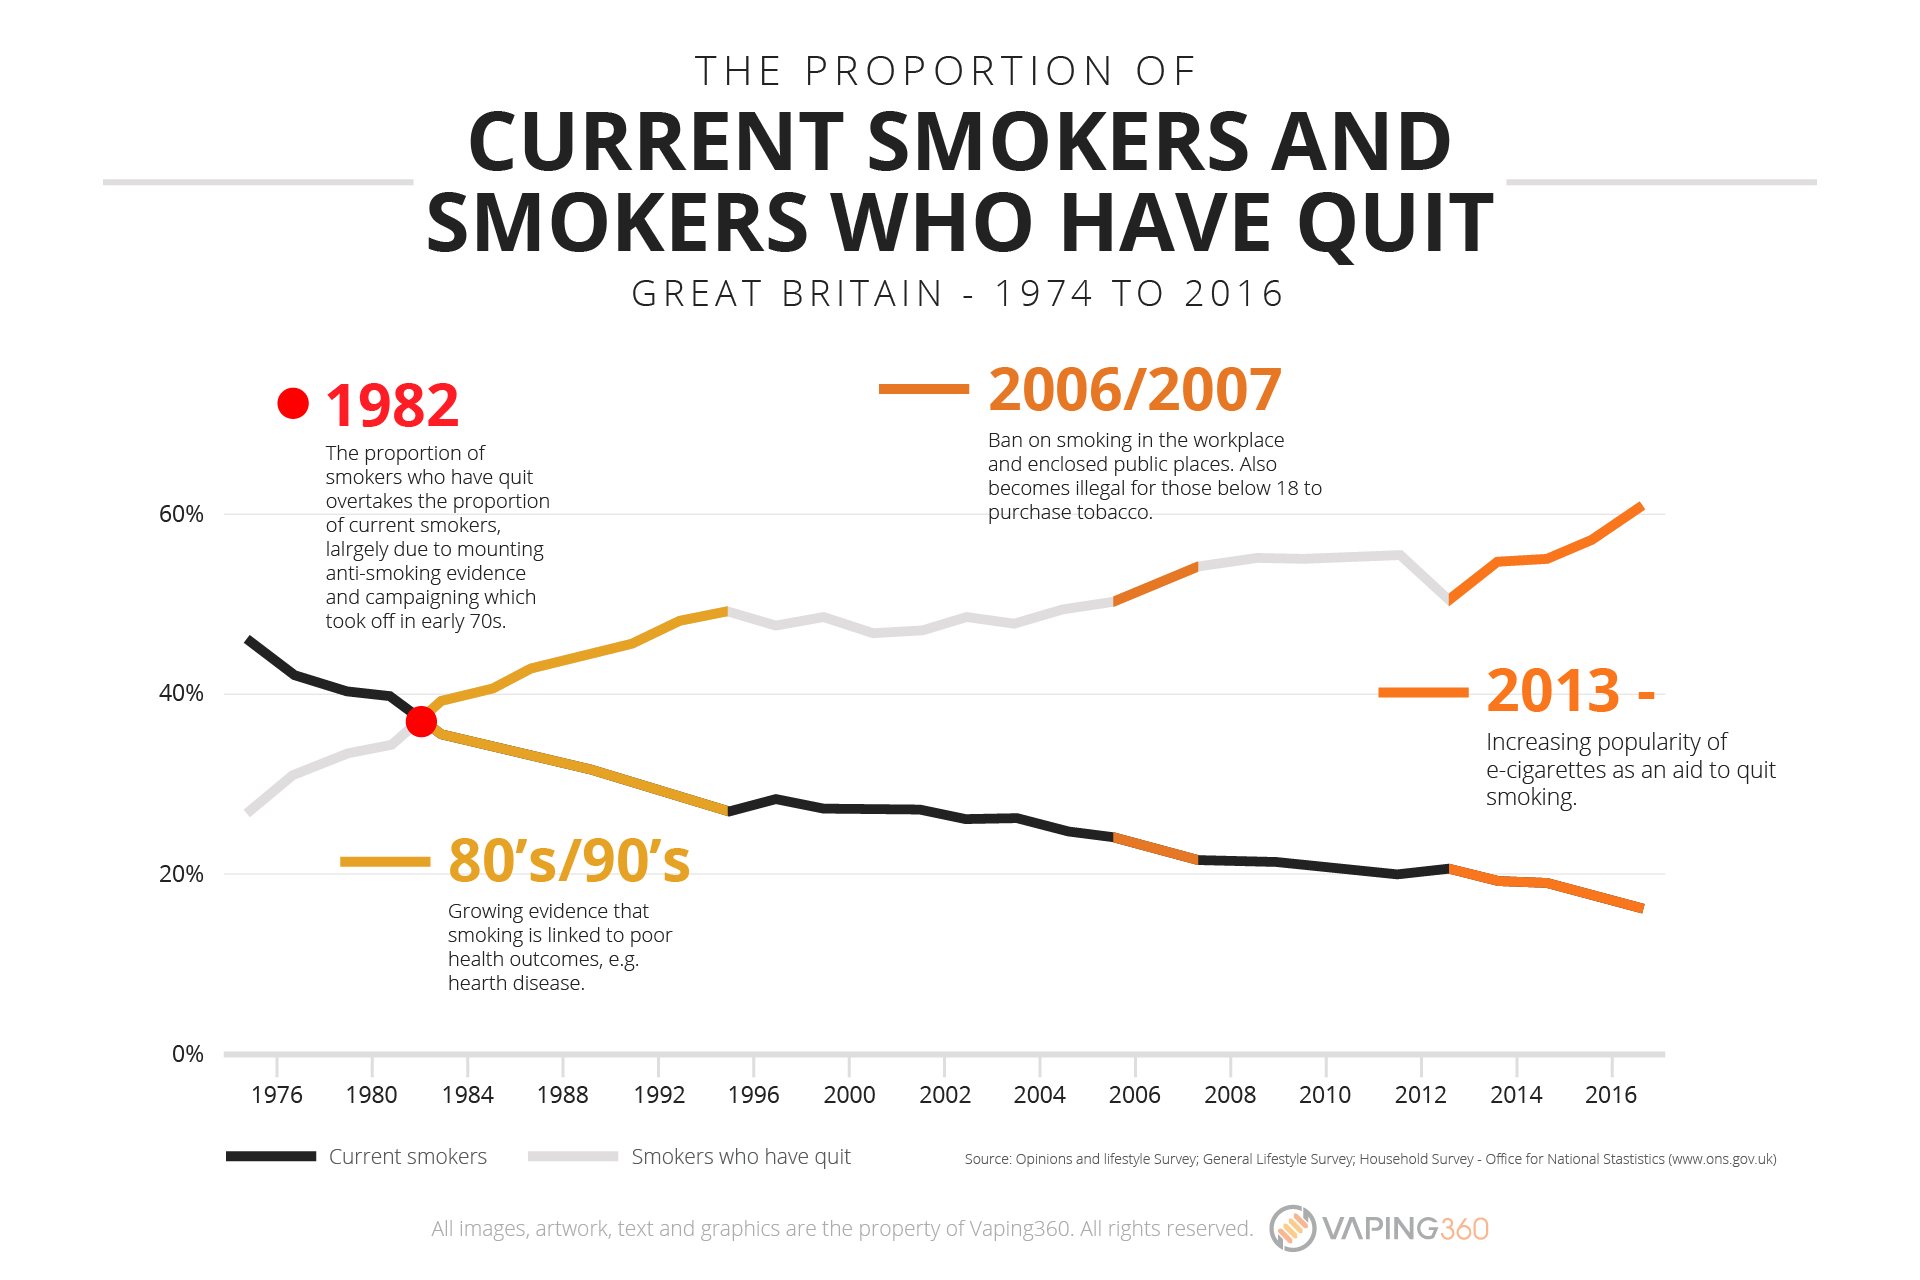 proportion-of-currents-smokers-vs-smokers-who-have-quit